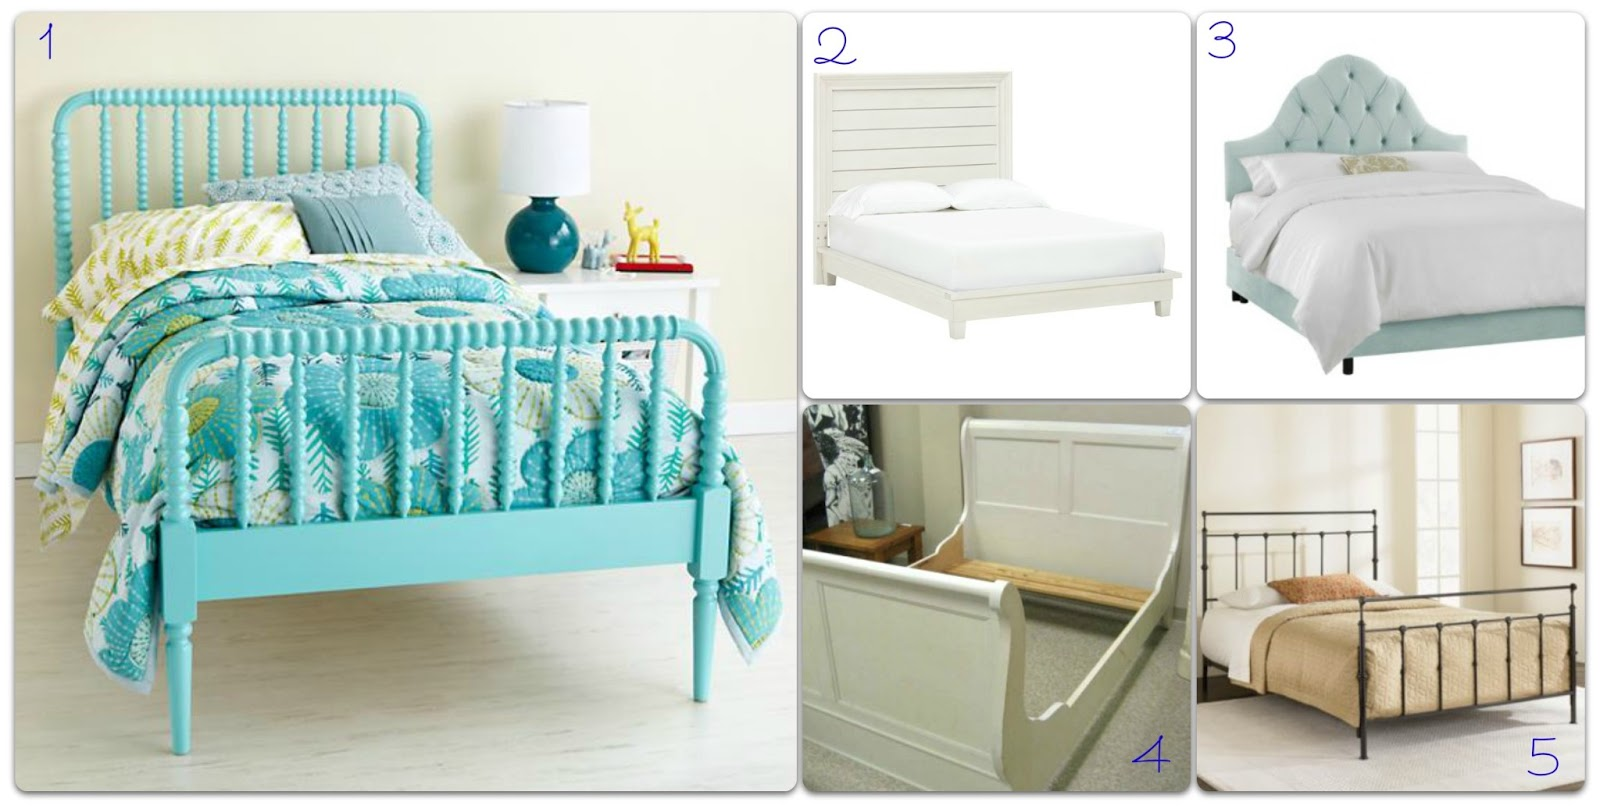 Choosing a Bed {Hello Teen}